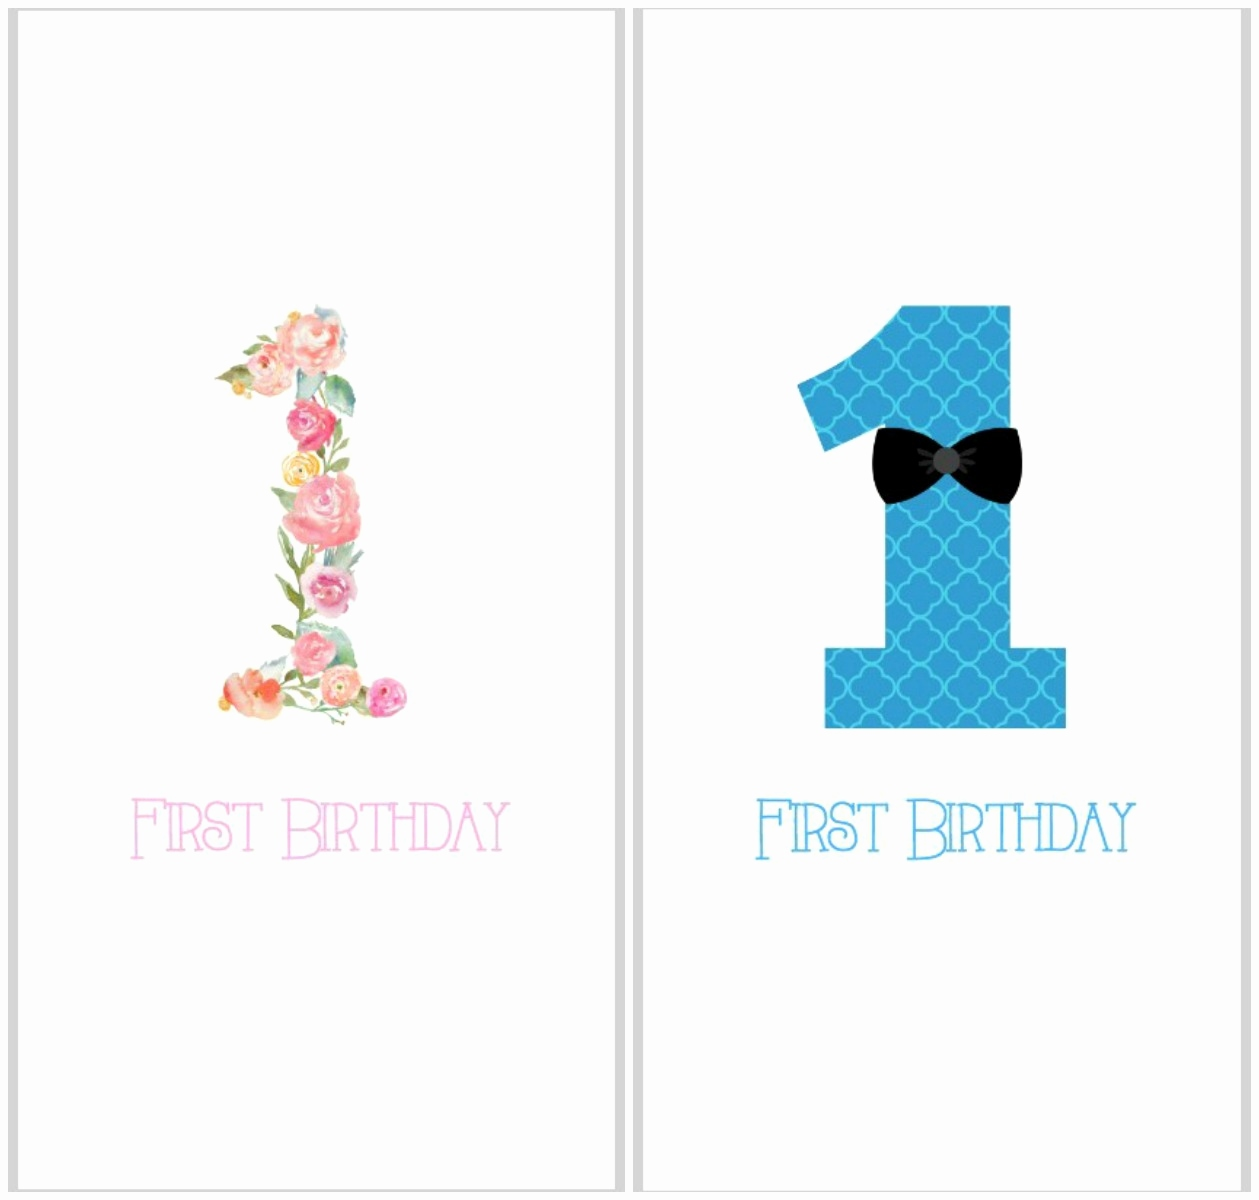 printable 1st birthday cards ; free-1st-birthday-cards-best-of-organizing-kids-keepsakes-birthday-cards-free-printable-of-free-1st-birthday-cards